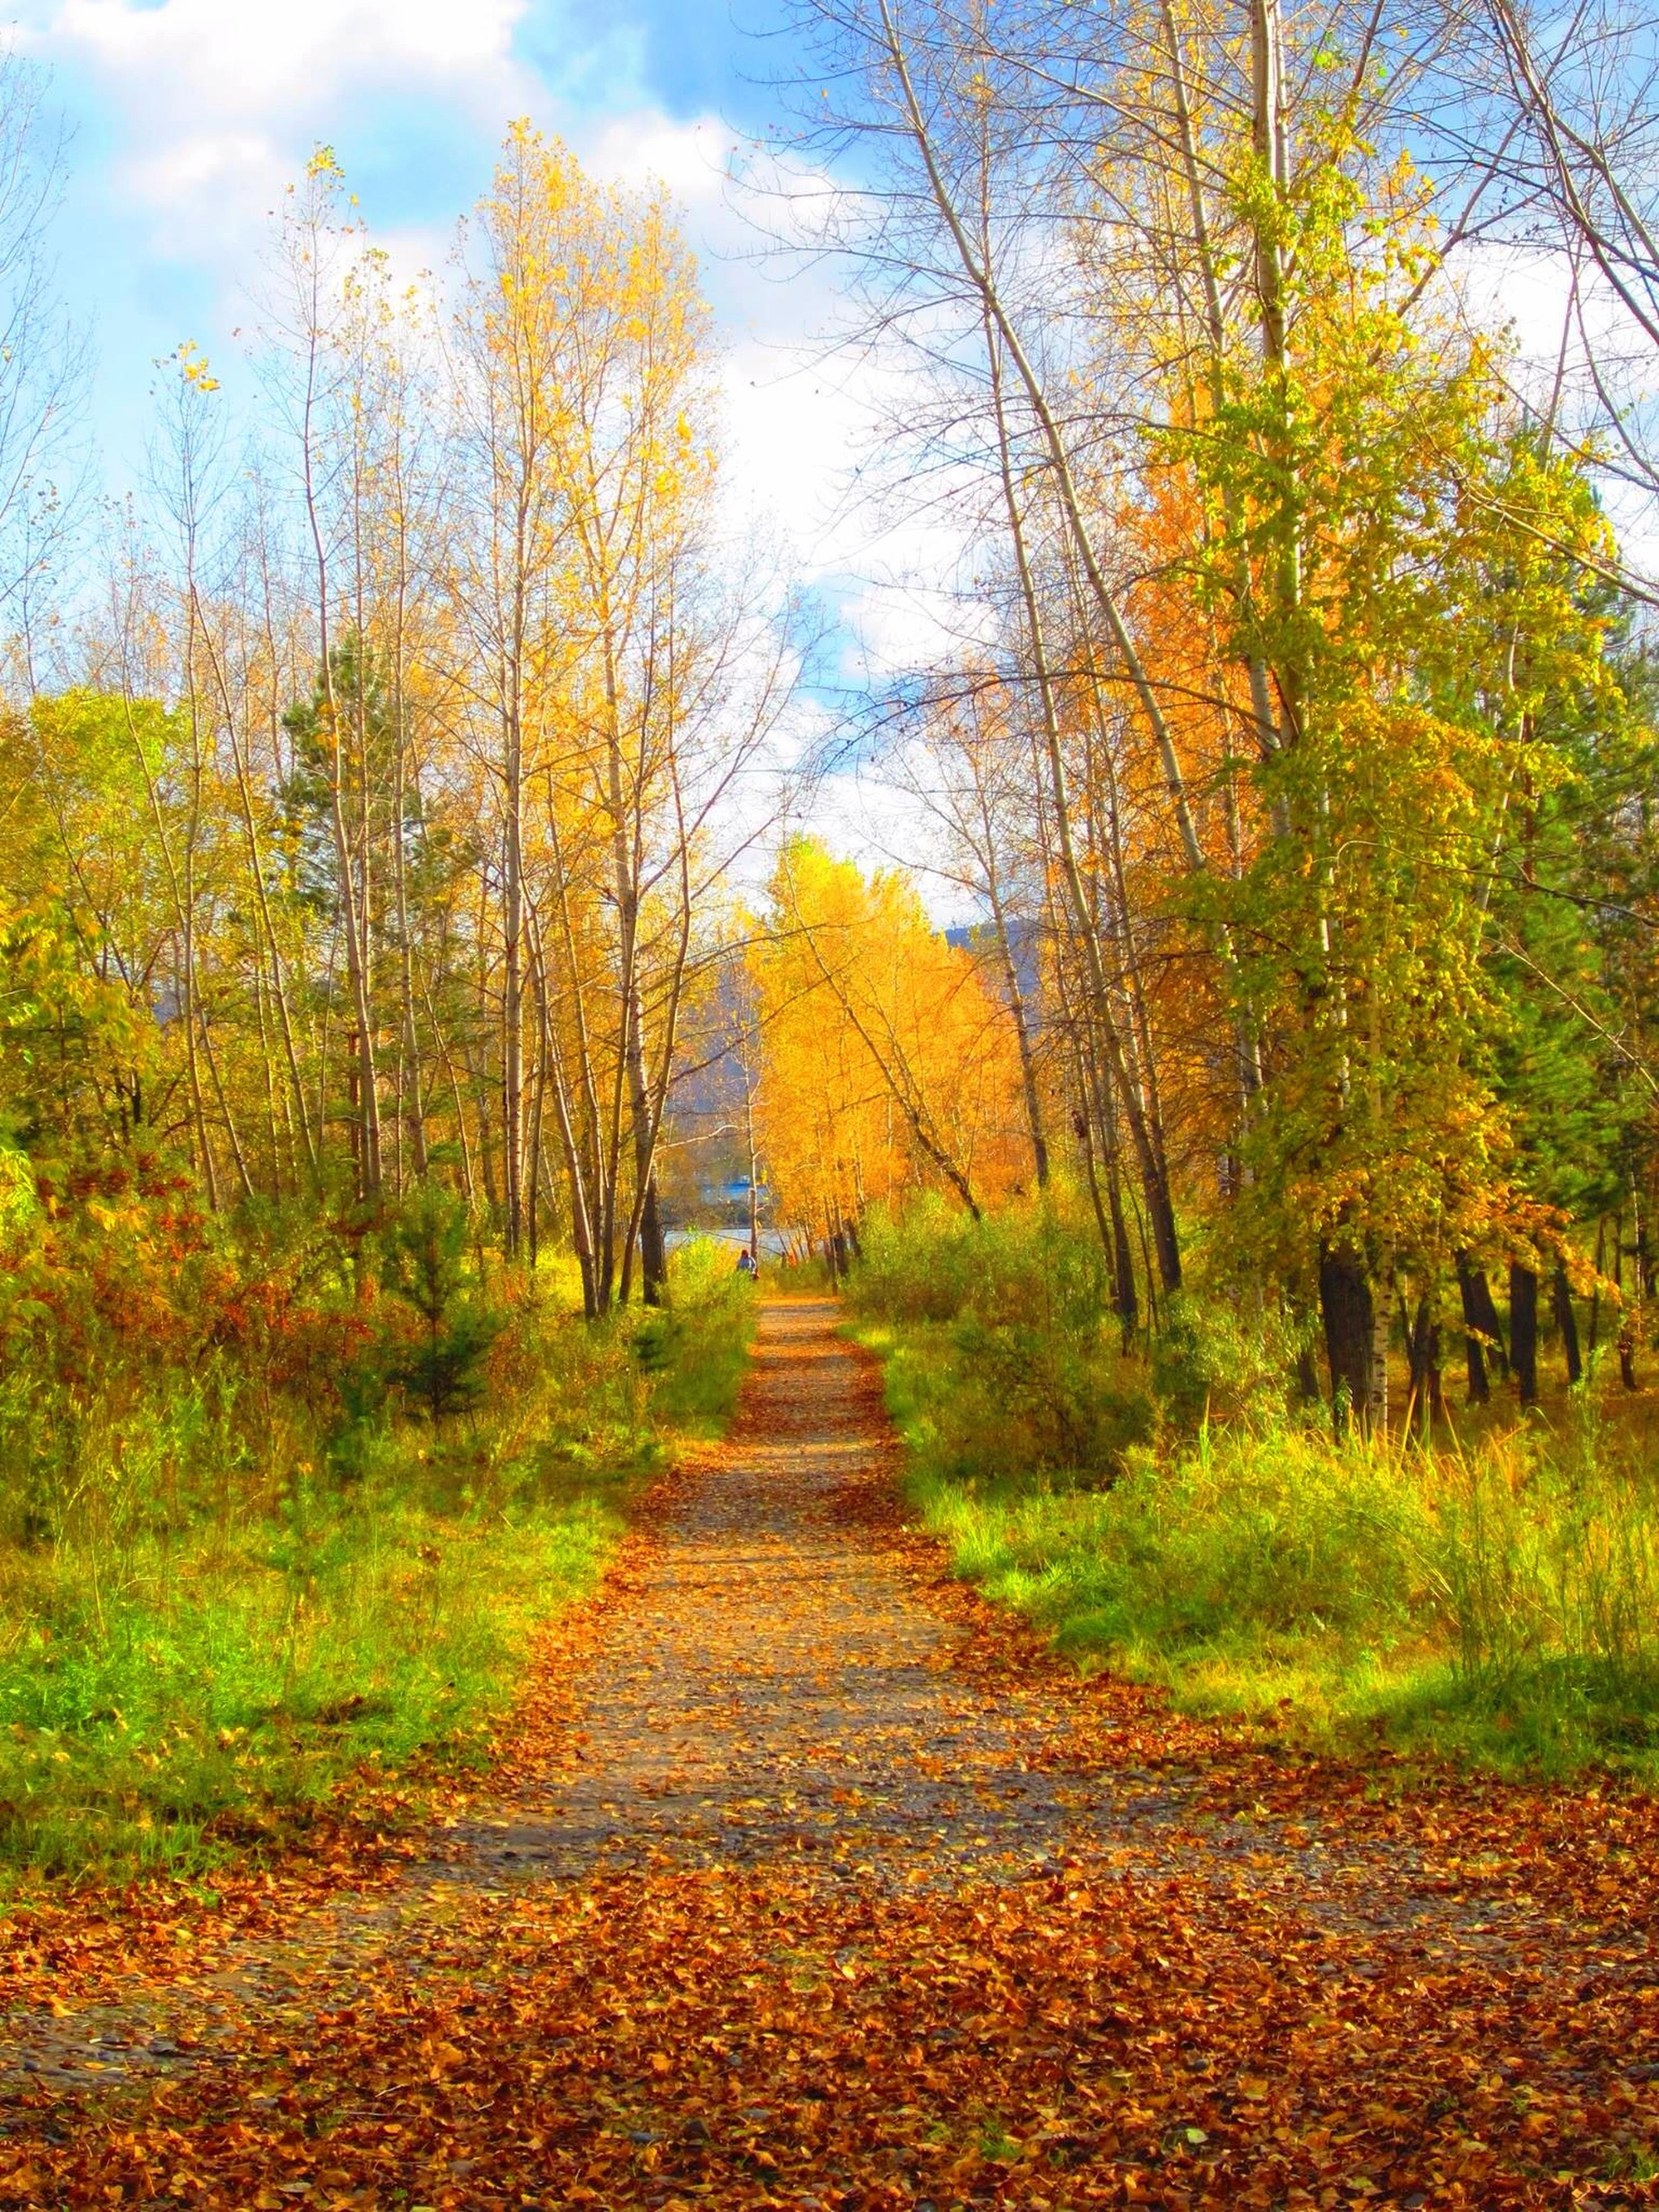 the way forward, tree, autumn, tranquility, diminishing perspective, sky, change, tranquil scene, nature, growth, vanishing point, beauty in nature, scenics, dirt road, landscape, grass, footpath, season, green color, day